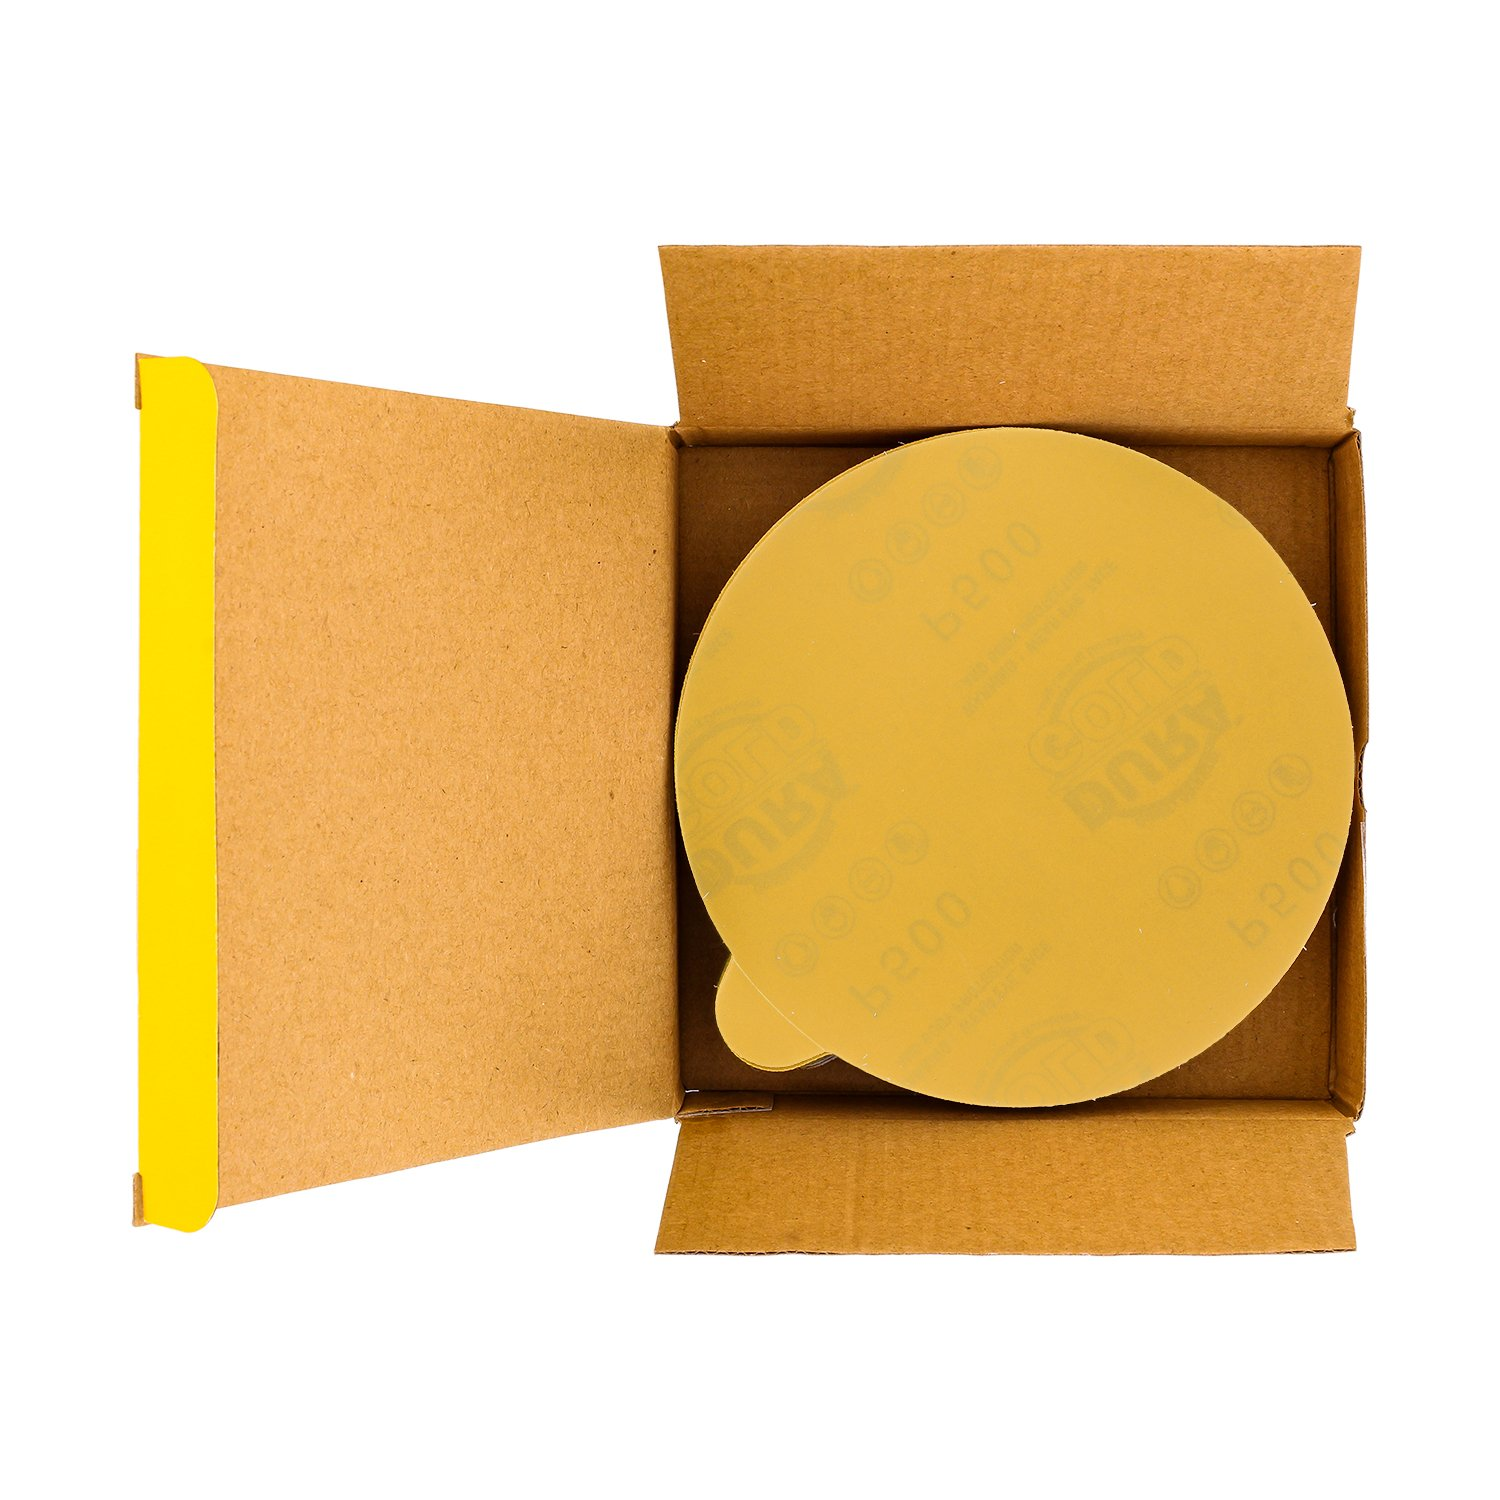 Premium Film Back Dura-Gold PSA Self Adhesive Stickyback Sanding Discs for DA Sanders Box of 25 Sandpaper Finishing Discs for Automotive and Woodworking 180 Grit 6 Green Film